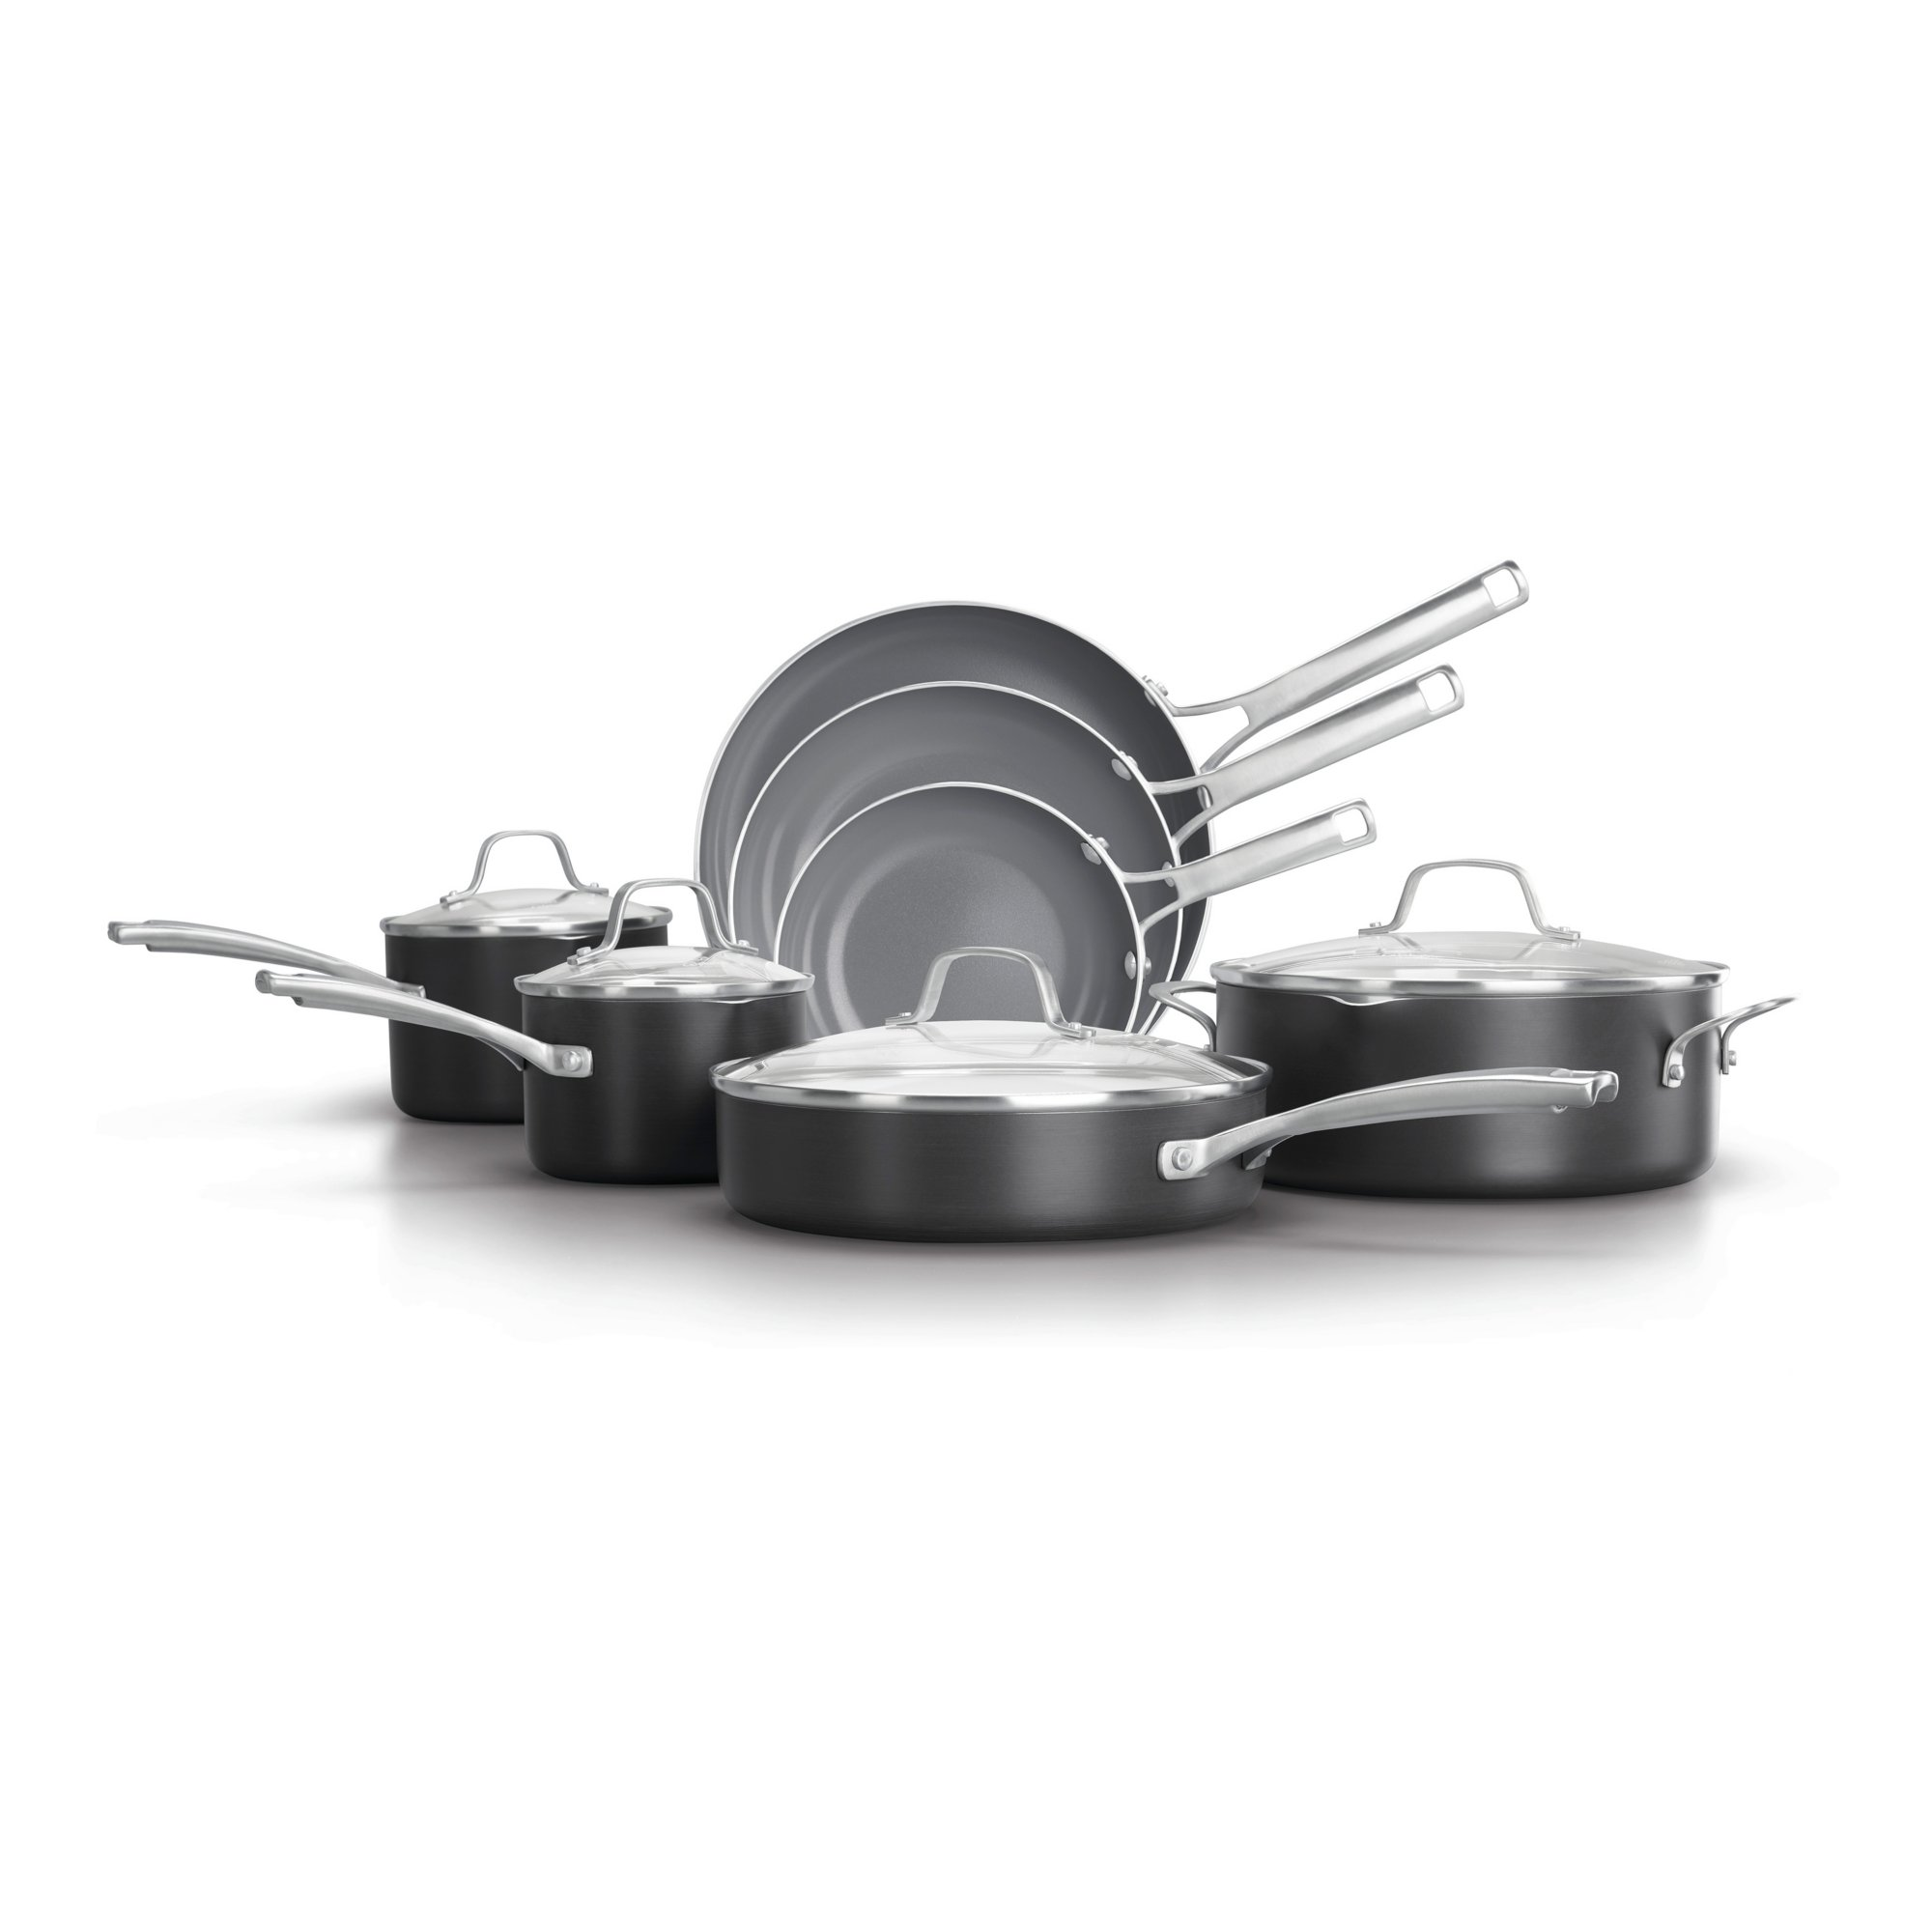 Calphalon Classic Oil Infused Ceramic 11- Piece Cookware Set